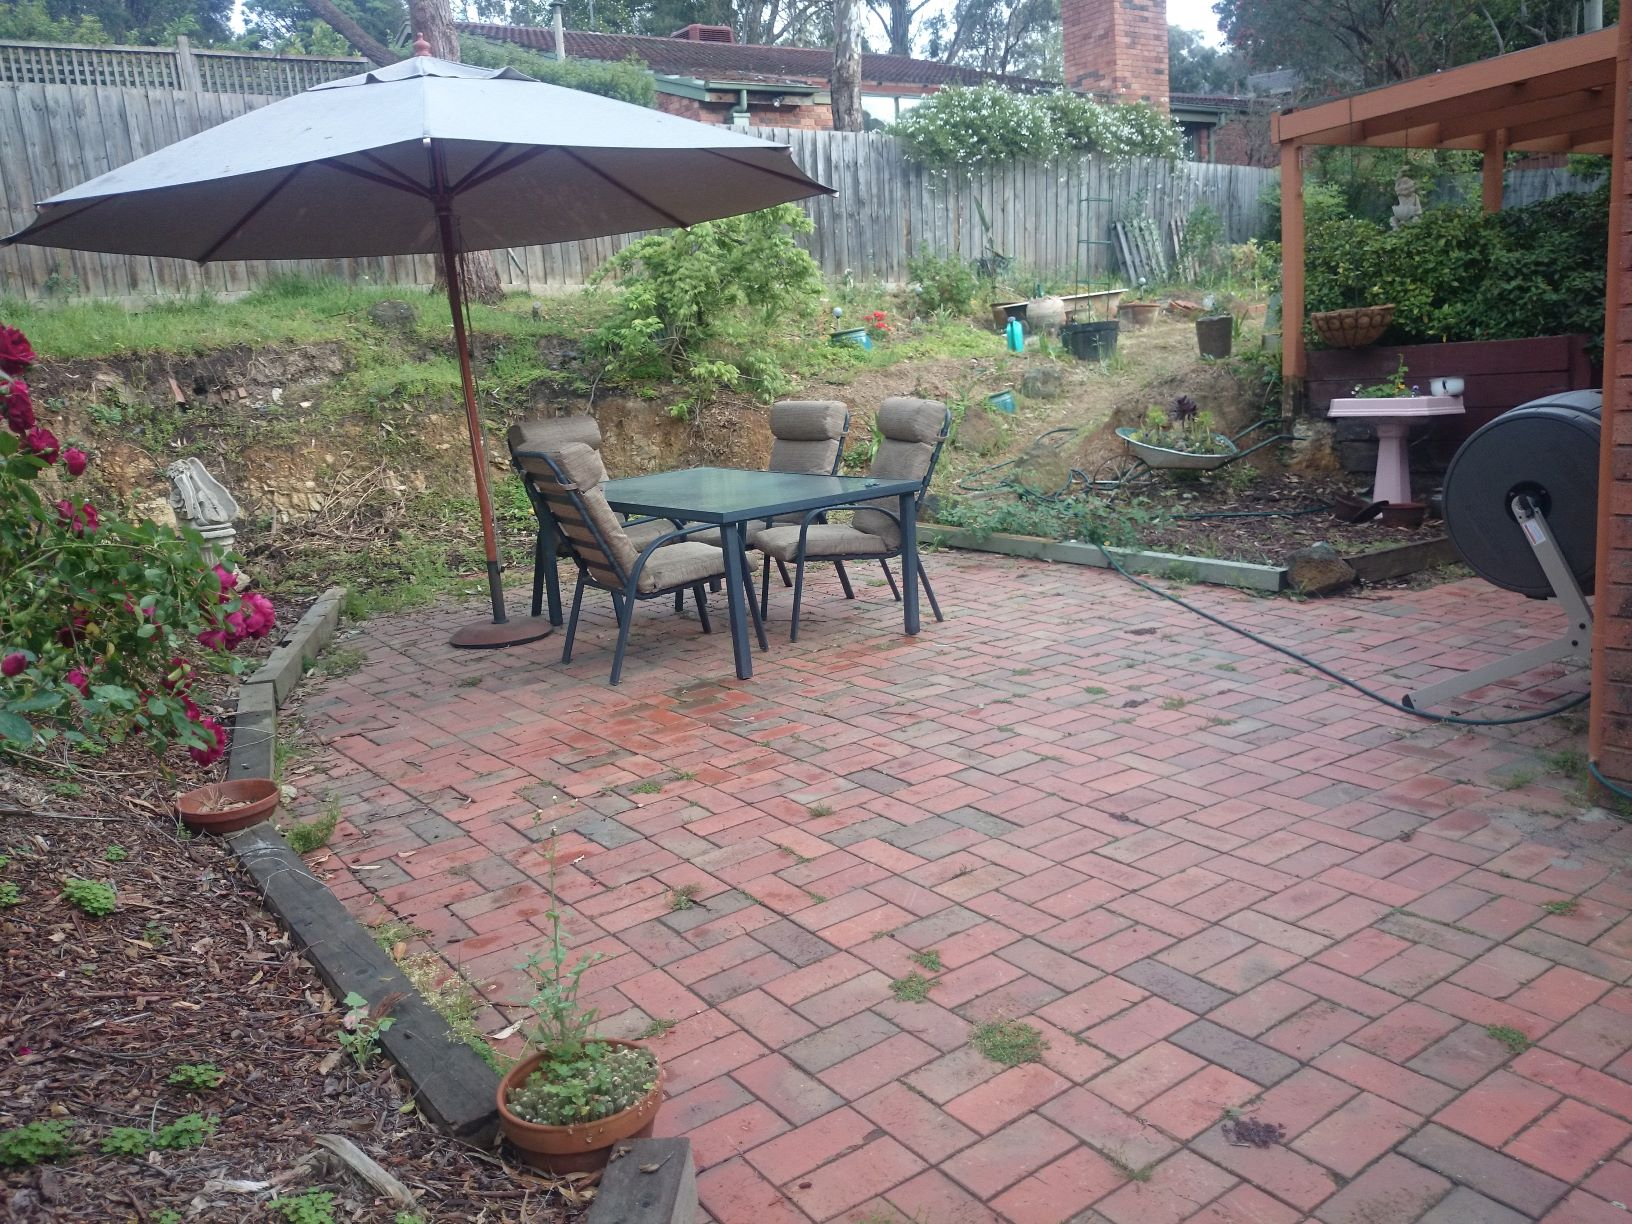 Before landscaping, Eltham entertaining area before works